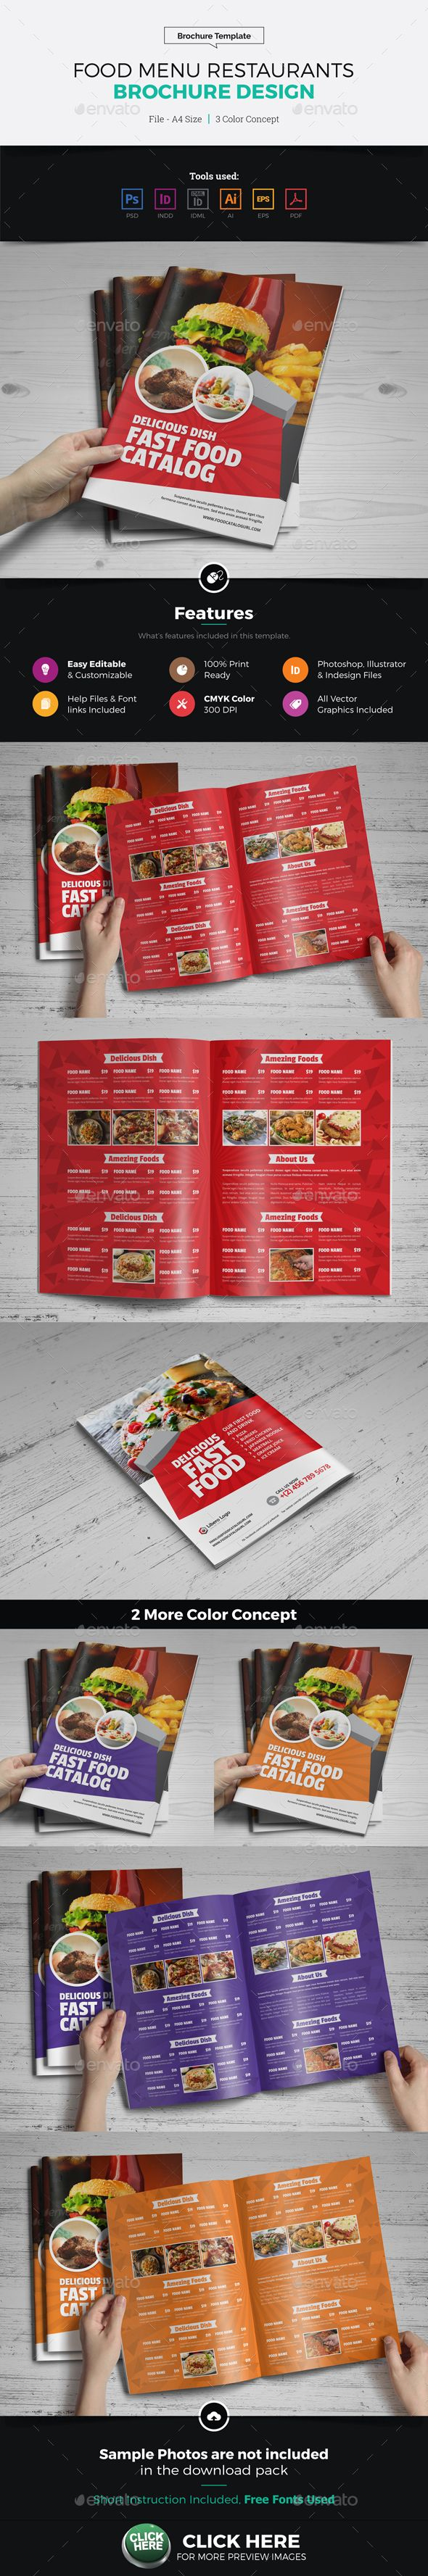 restaurant server cover letter%0A Food Menu Restaurants Brochure Design